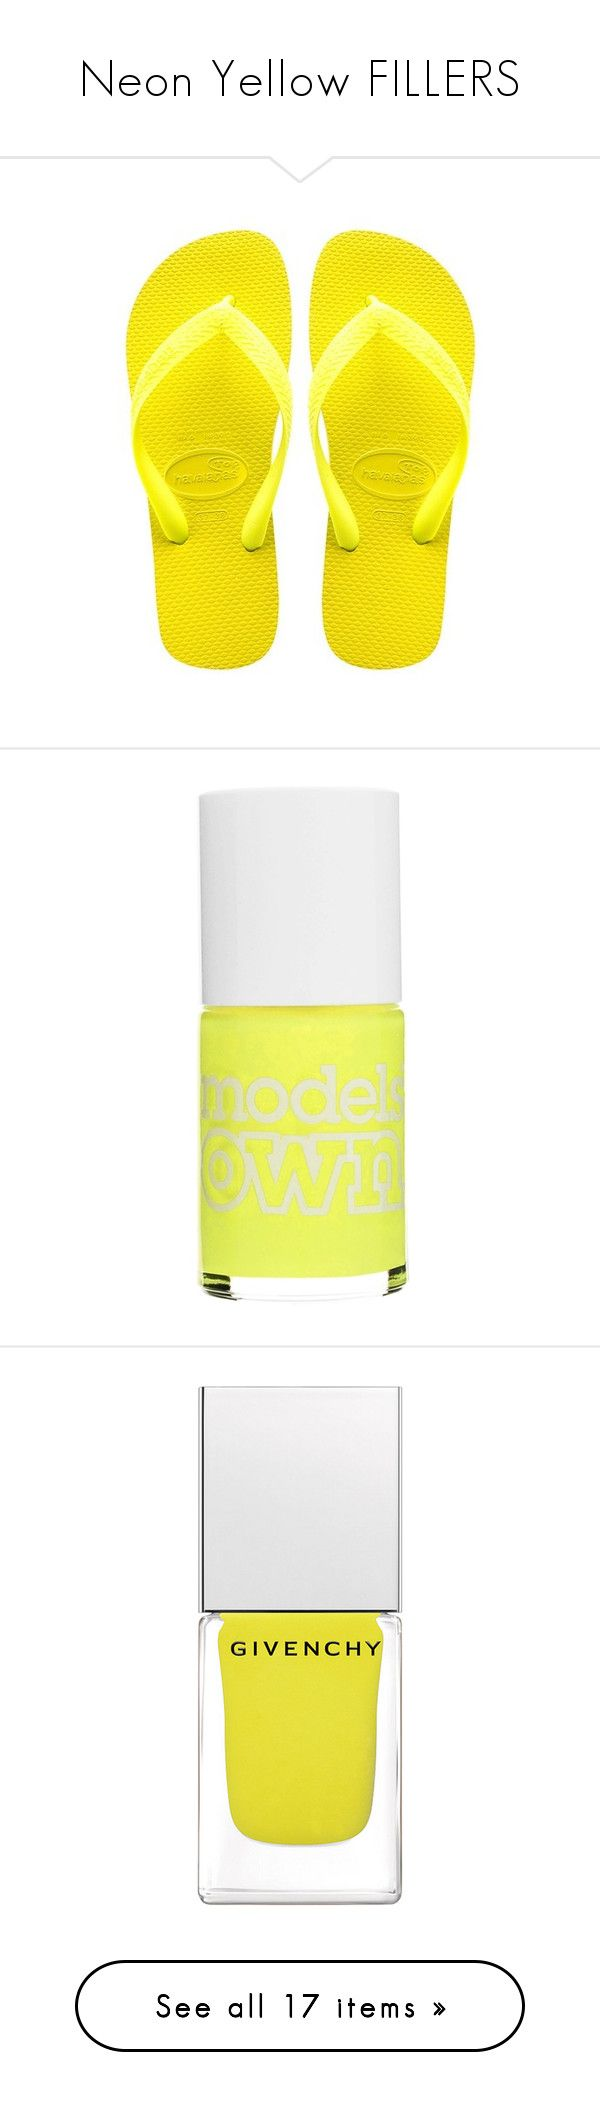 """""""Neon Yellow FILLERS"""" by stelbell ❤ liked on Polyvore featuring neon, fillers, neonfillers, shoes, sandals, flip flops, flats, neon yellow shoes, neon yellow flip flops and neon yellow sandals"""